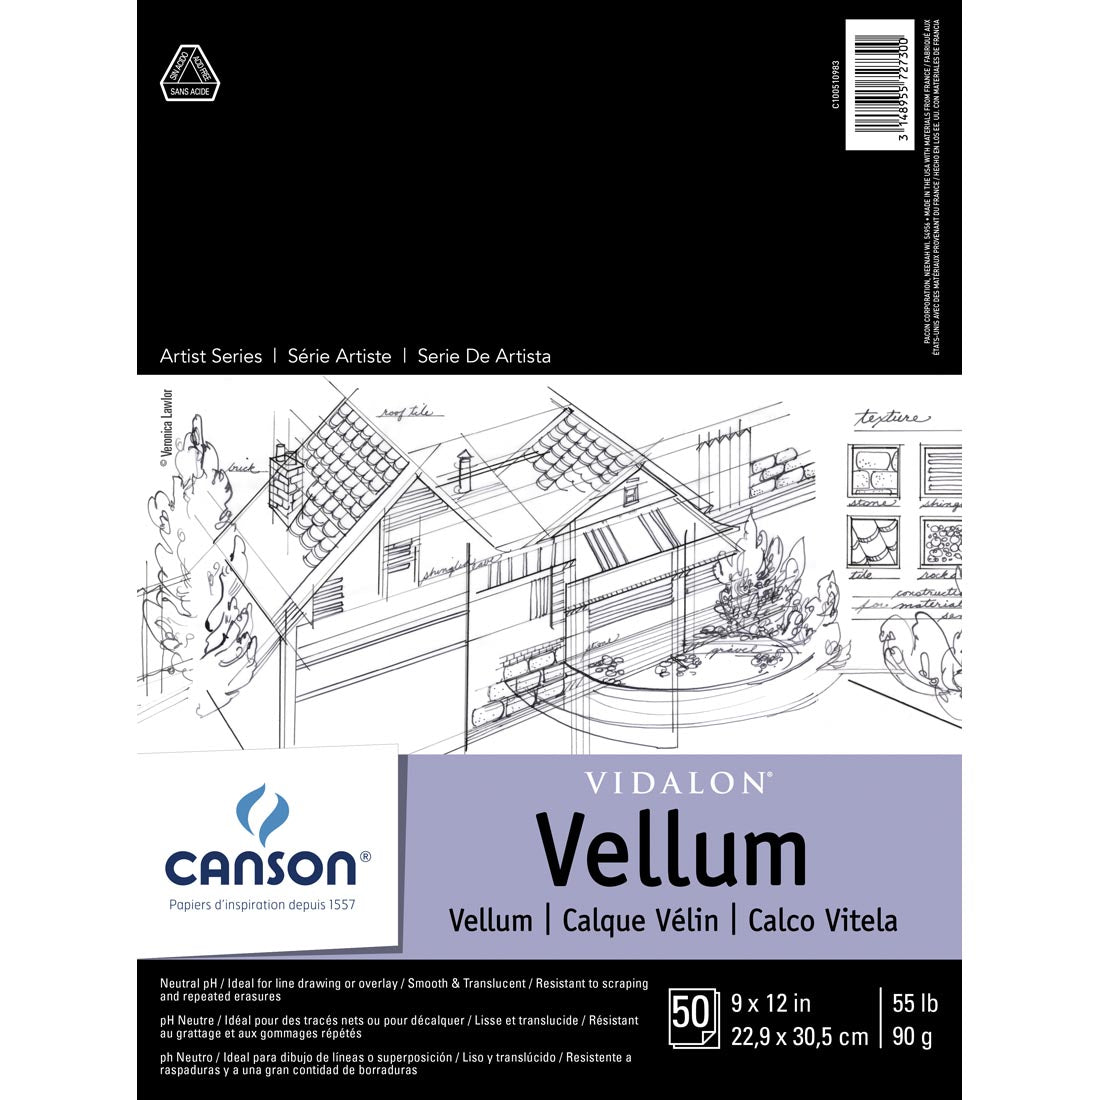 Canson Vidalon Vellum Heavyweight Tracing Paper Pad - 55 lb. - by Canson - K. A. Artist Shop